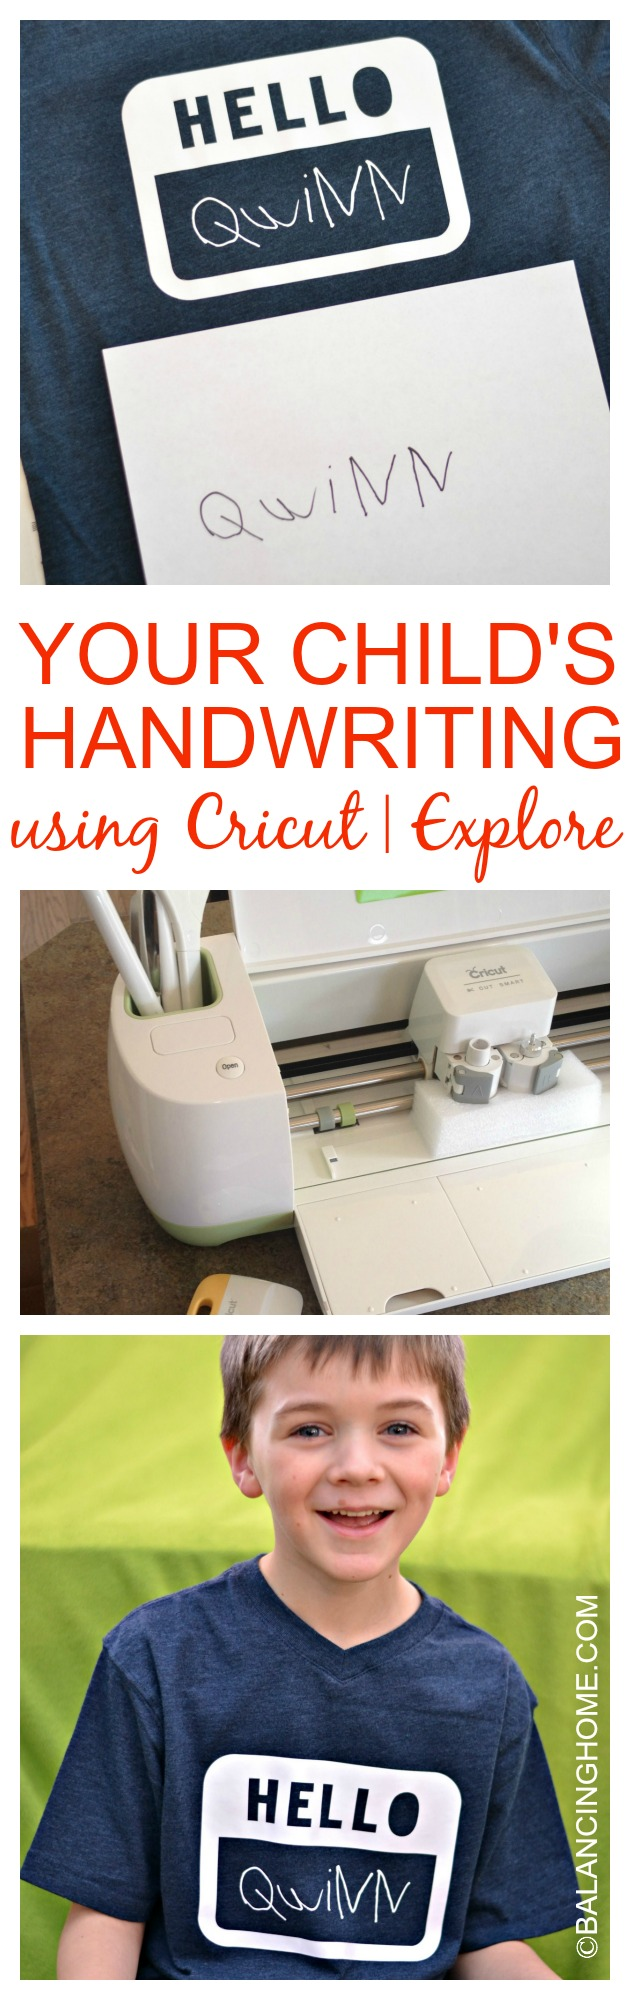 YOUR-CHILDS-HANDWRITING-USING-CRICUT-EXPLORE